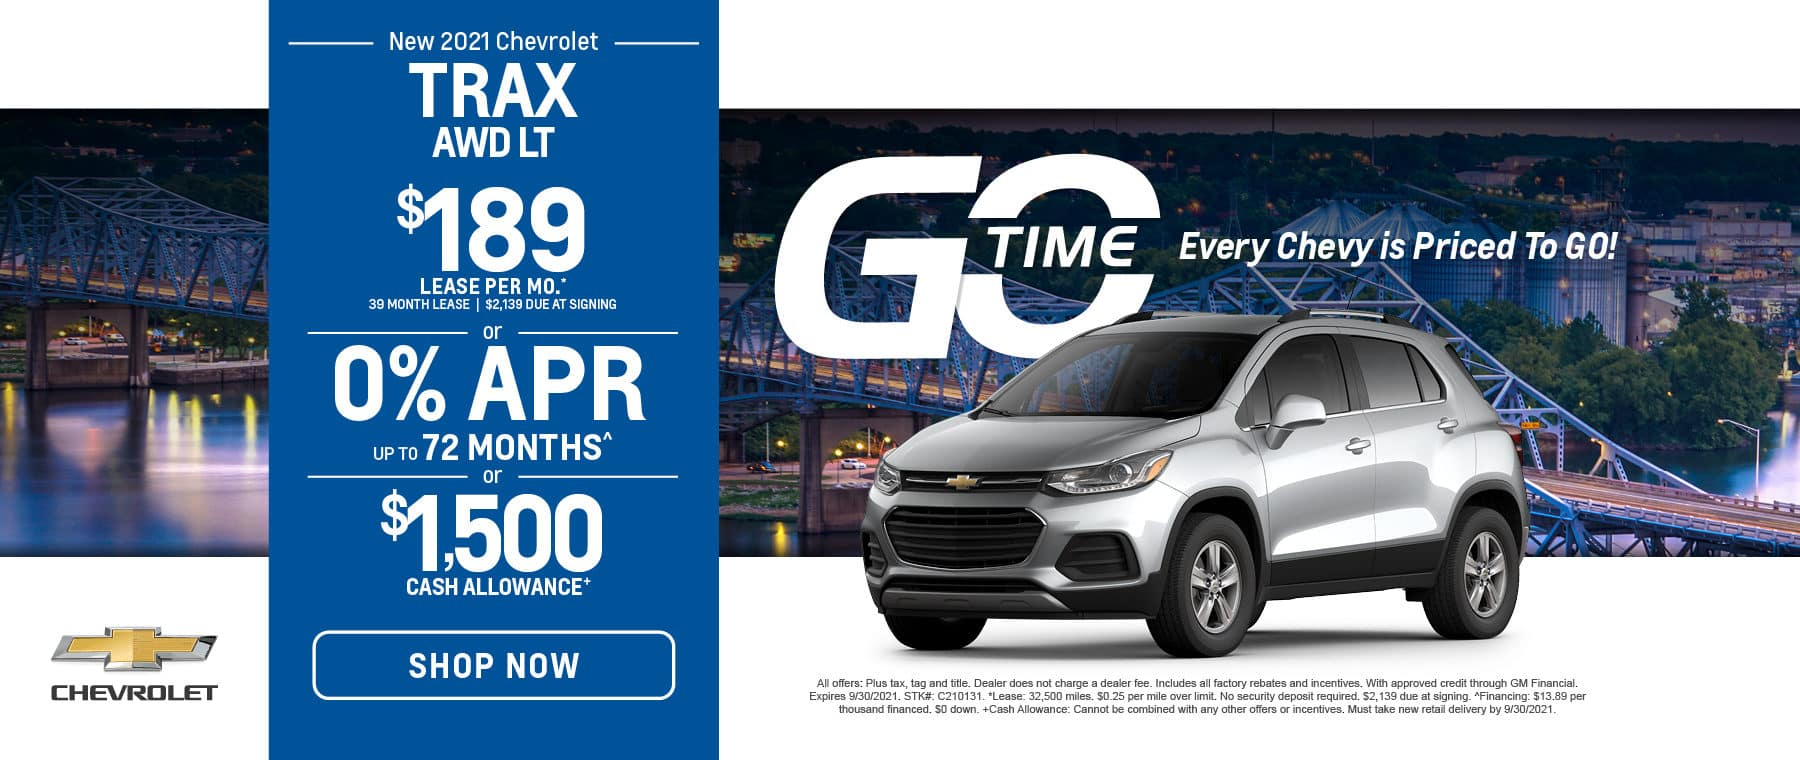 Go Time Chevy Trax